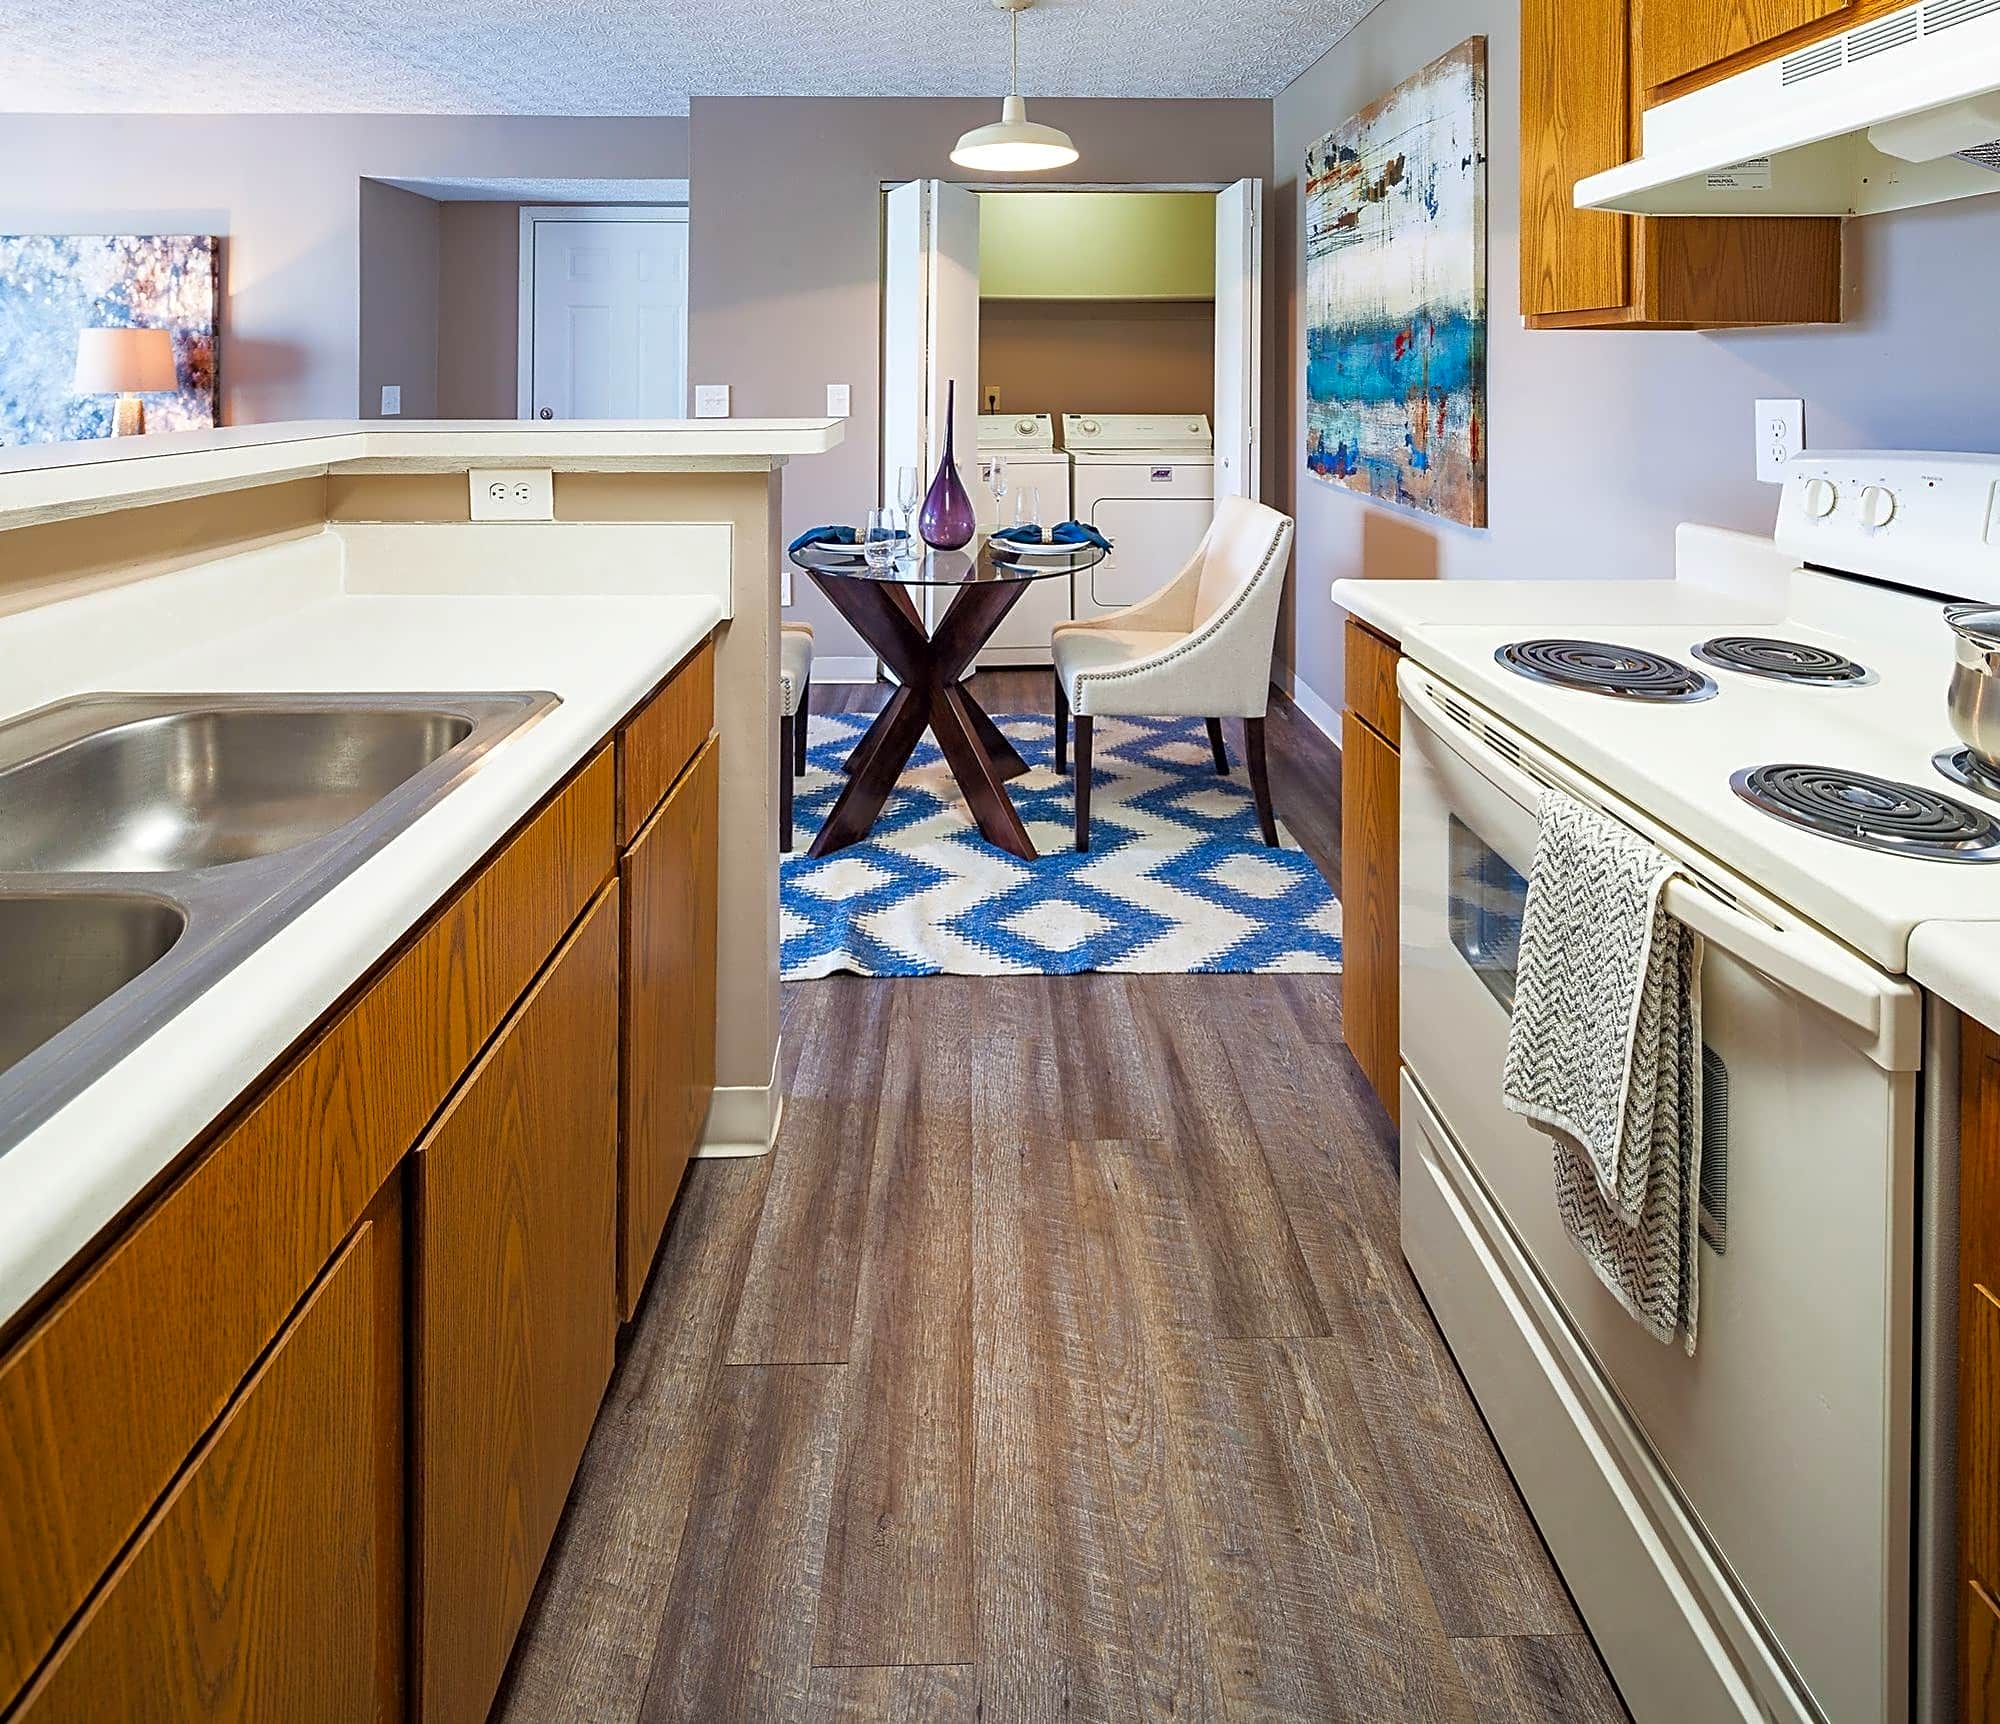 Apartments In Grove City Ohio: The Bend By Cortland Apartments